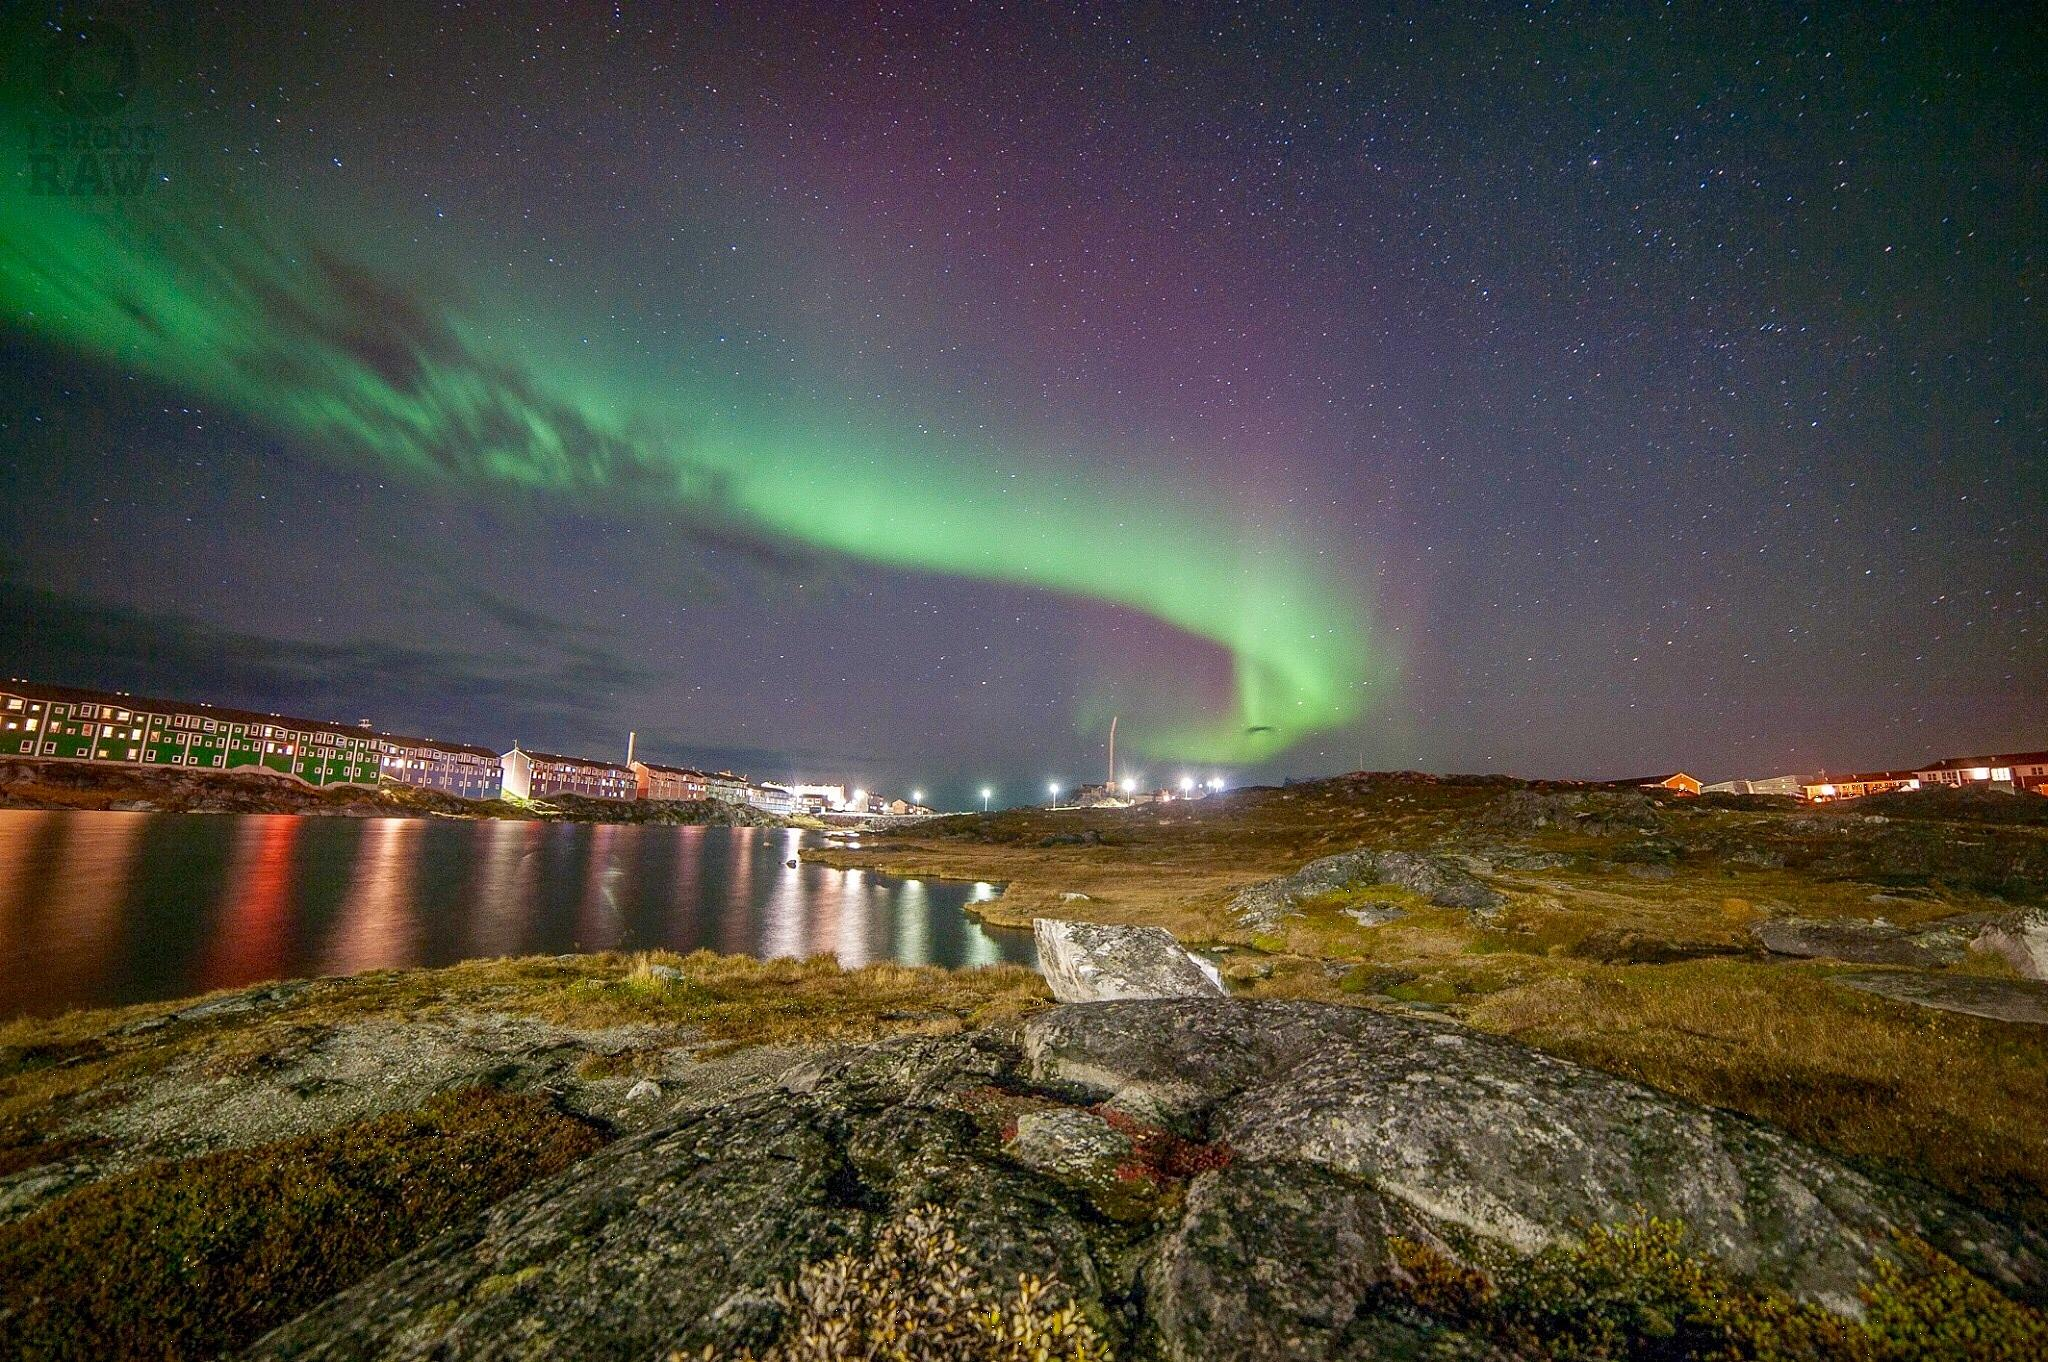 The northern lights by henrikz.deleon